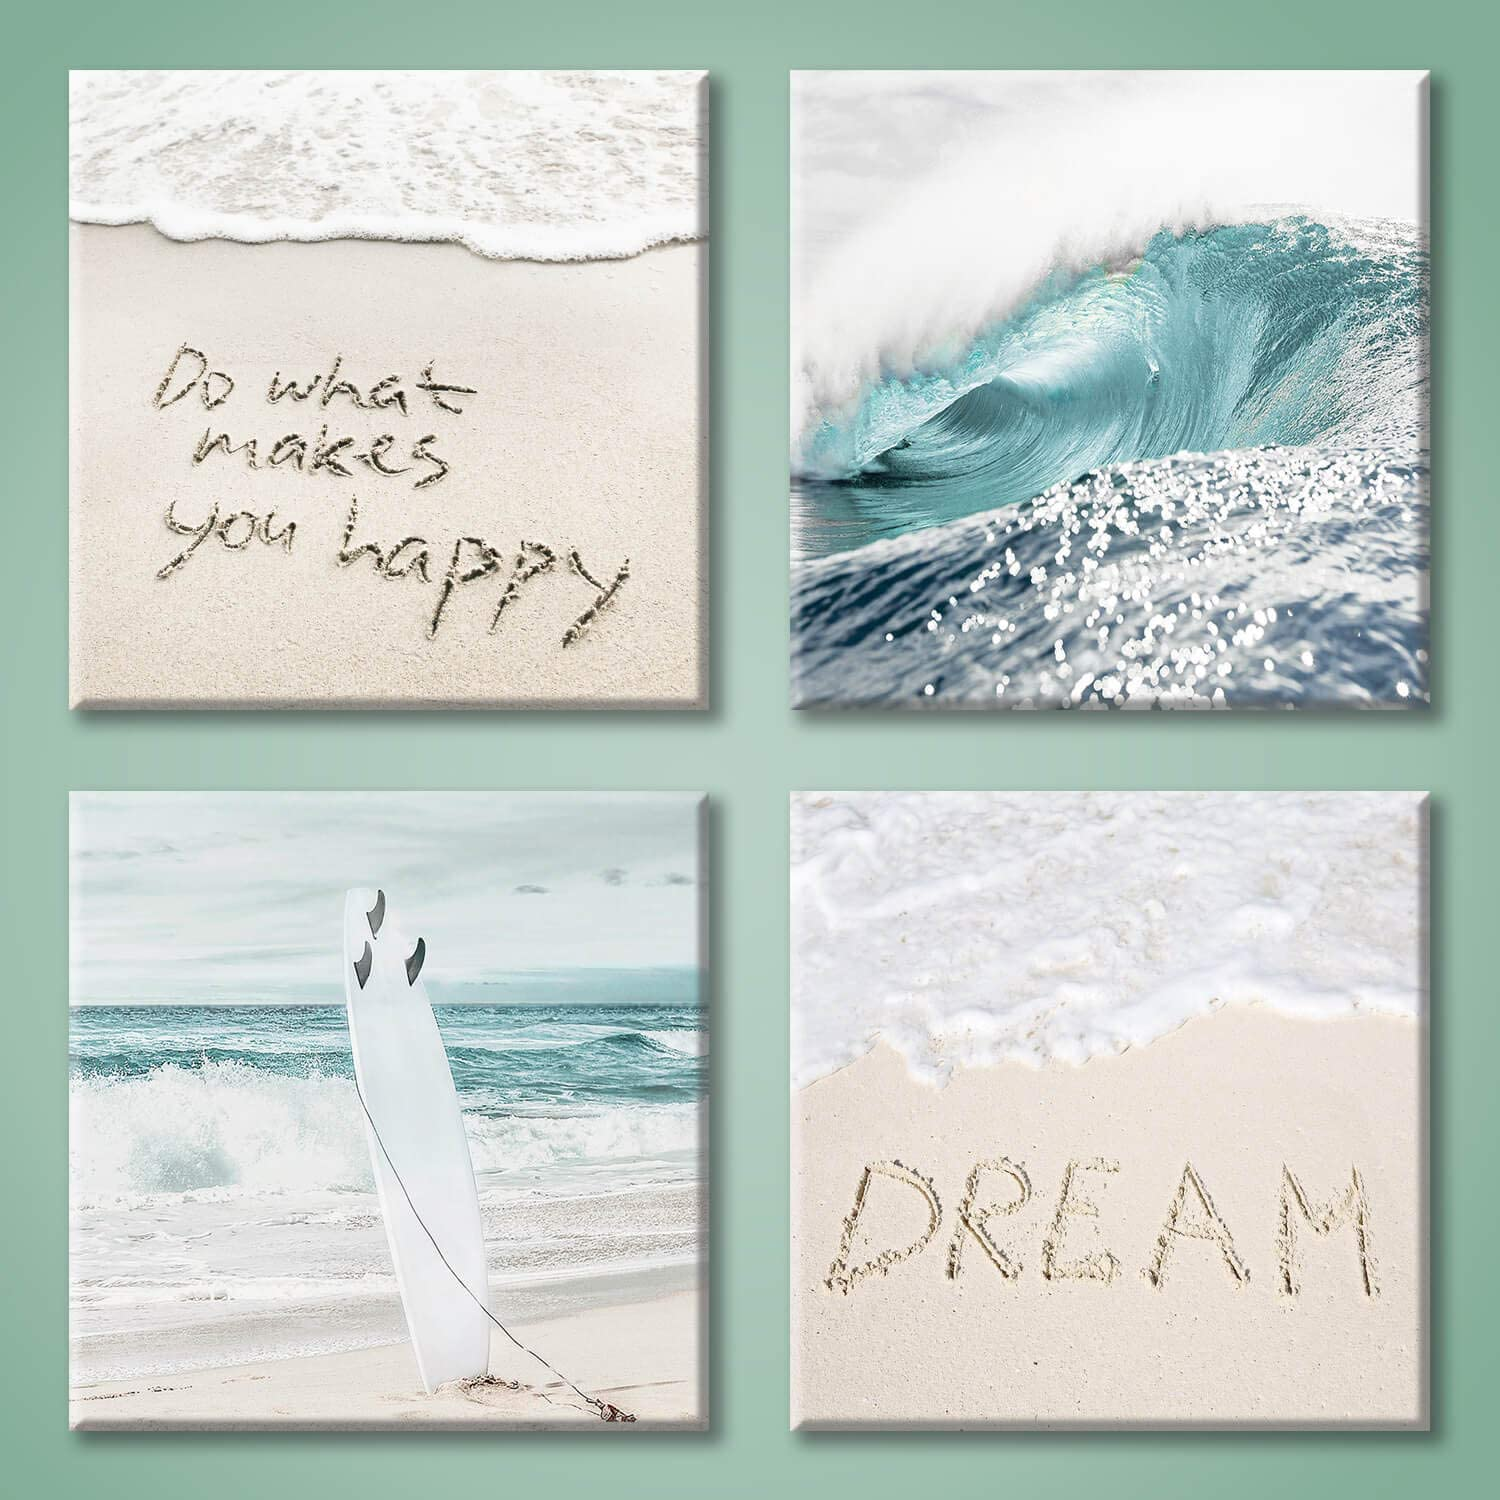 "Beach Artwork Coastal Wall Art: Crashing Wave & Surfboard Painting with Words on Sand Picture Prints on Canvas for Bedroom (12"" x 12"" x 4 Panels)"